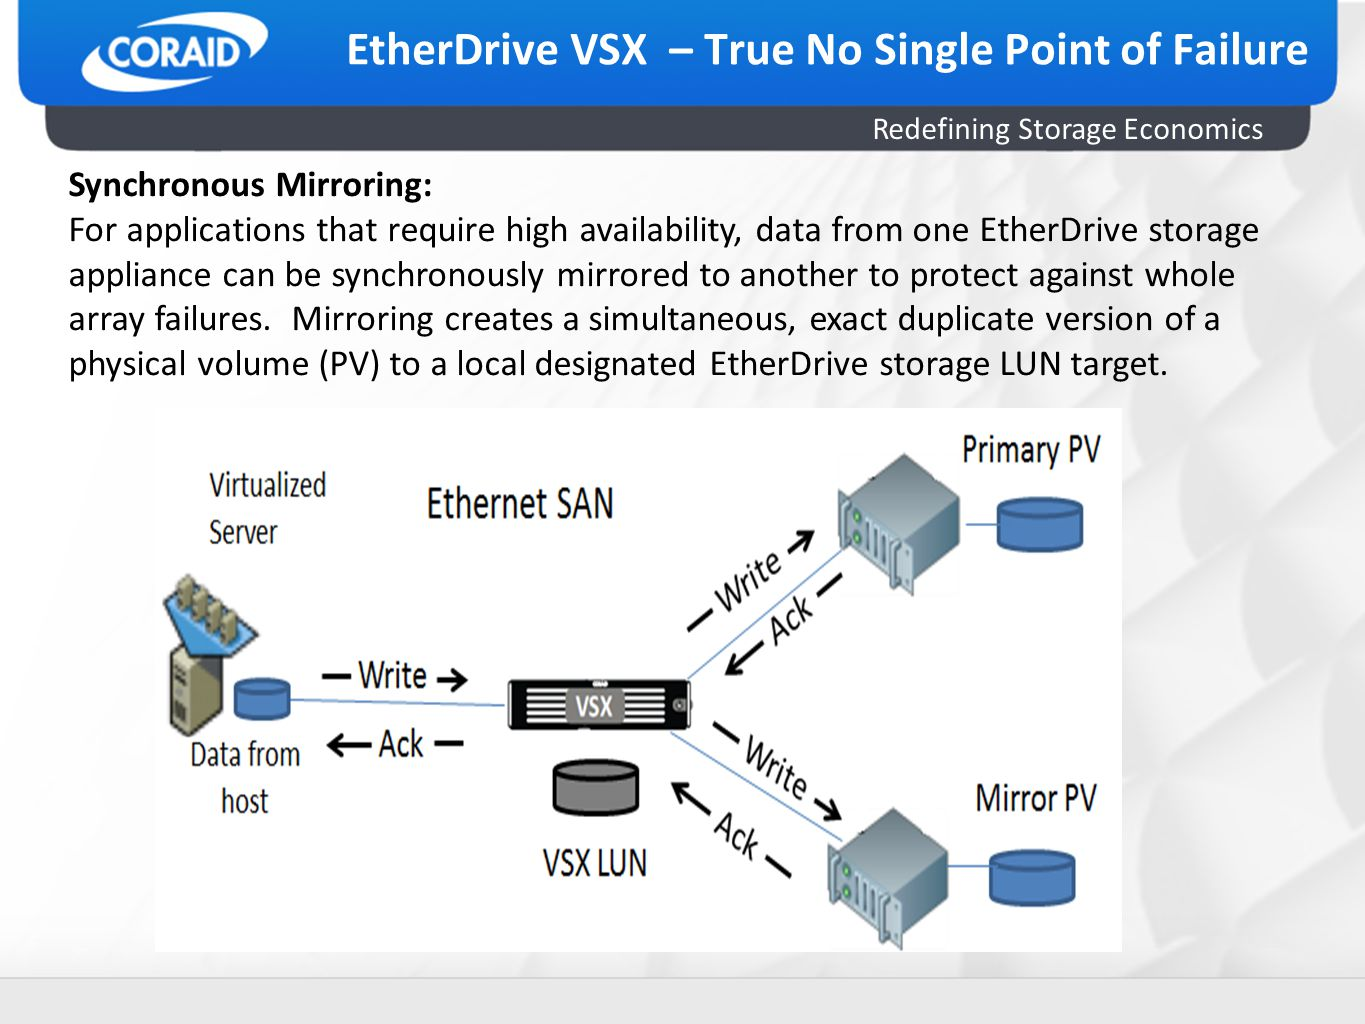 Redefining Storage Economics EtherDrive VSX – True No Single Point of Failure Synchronous Mirroring: For applications that require high availability, data from one EtherDrive storage appliance can be synchronously mirrored to another to protect against whole array failures.